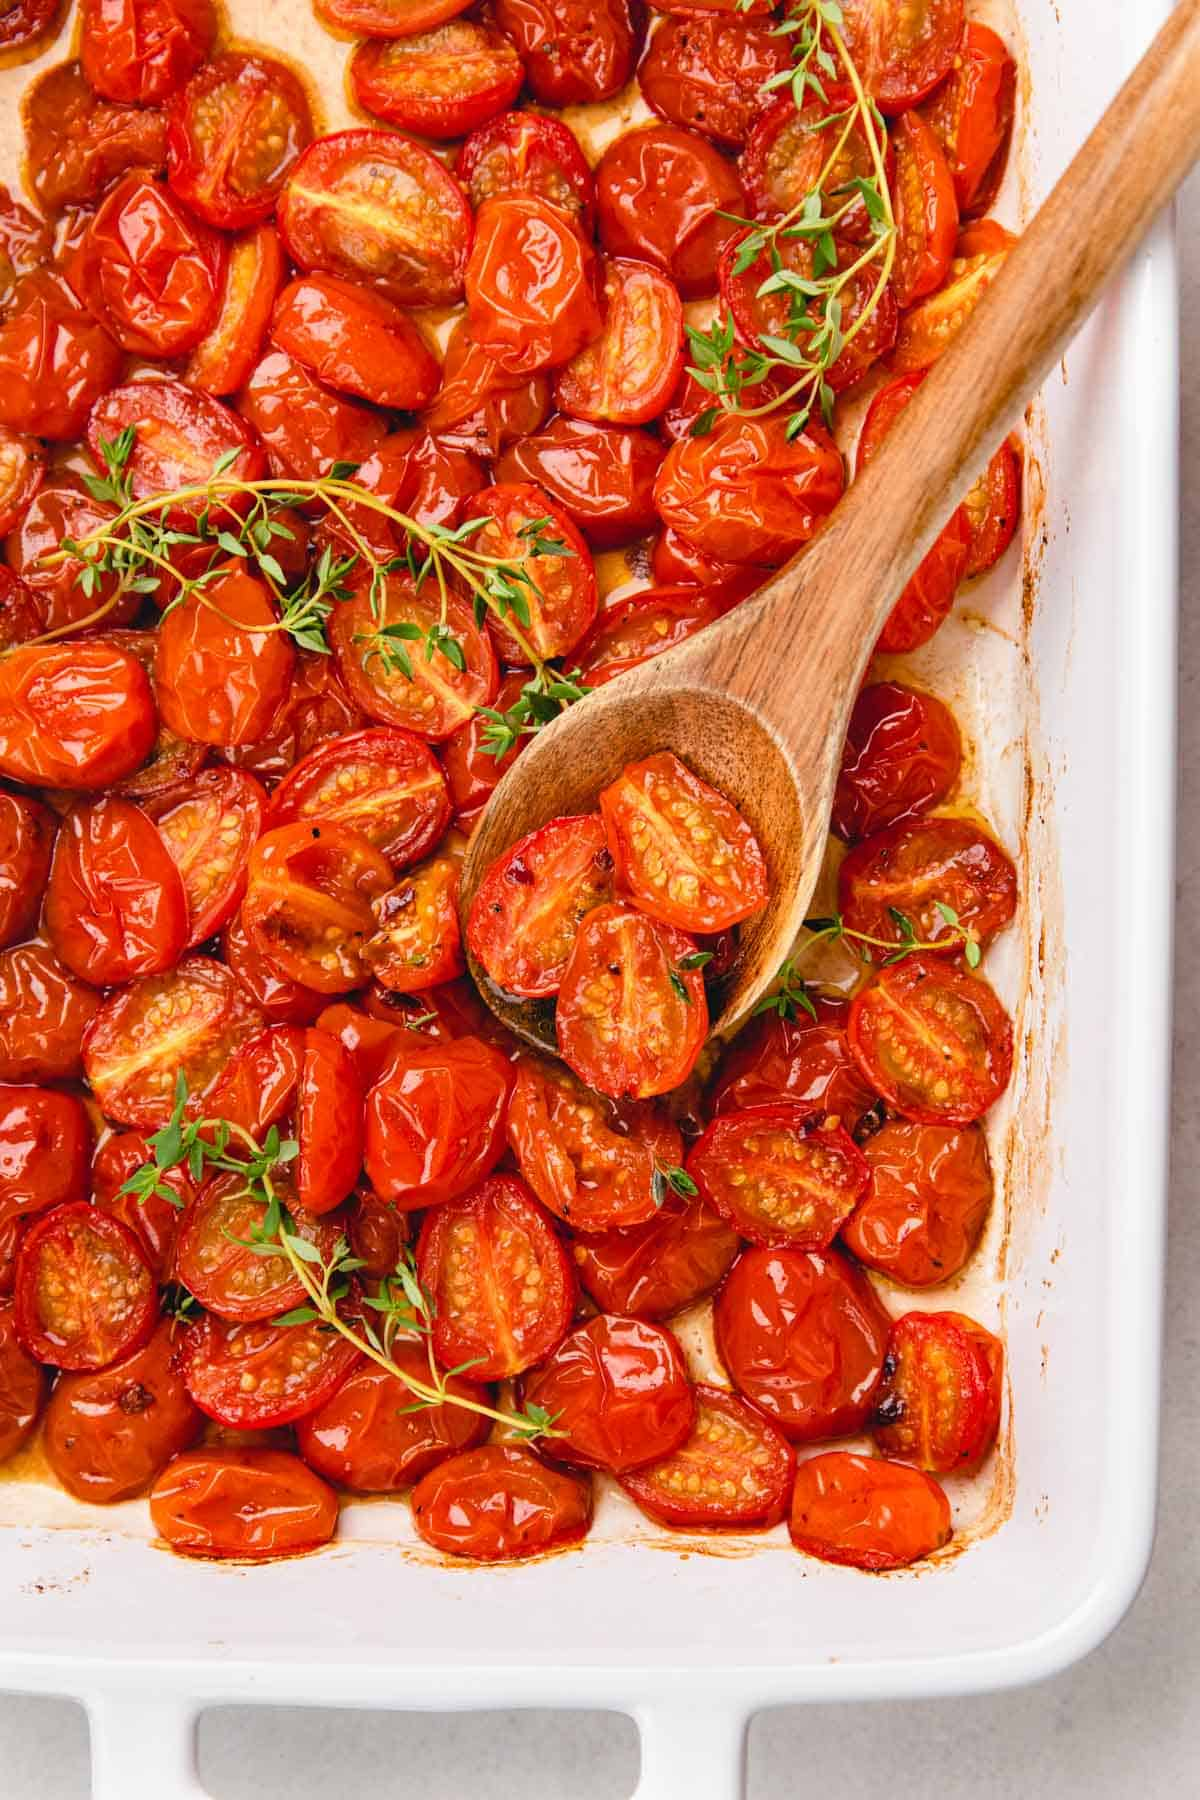 Roasted halved red cherry tomatoes in a white baking pan with a wooden spoon.